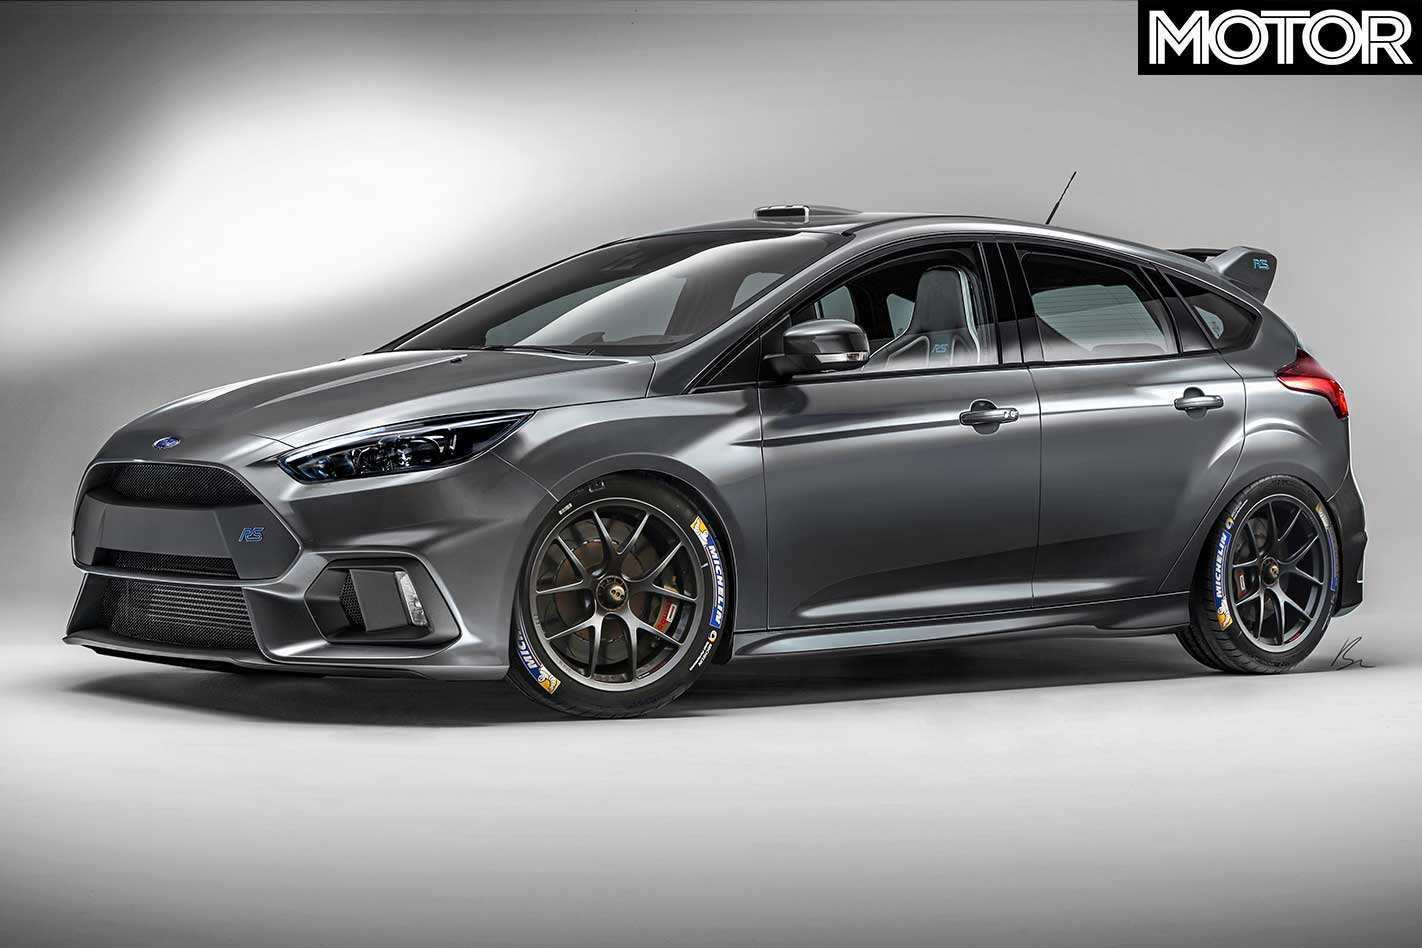 53 Concept of 2020 Focus Rs Pictures by 2020 Focus Rs